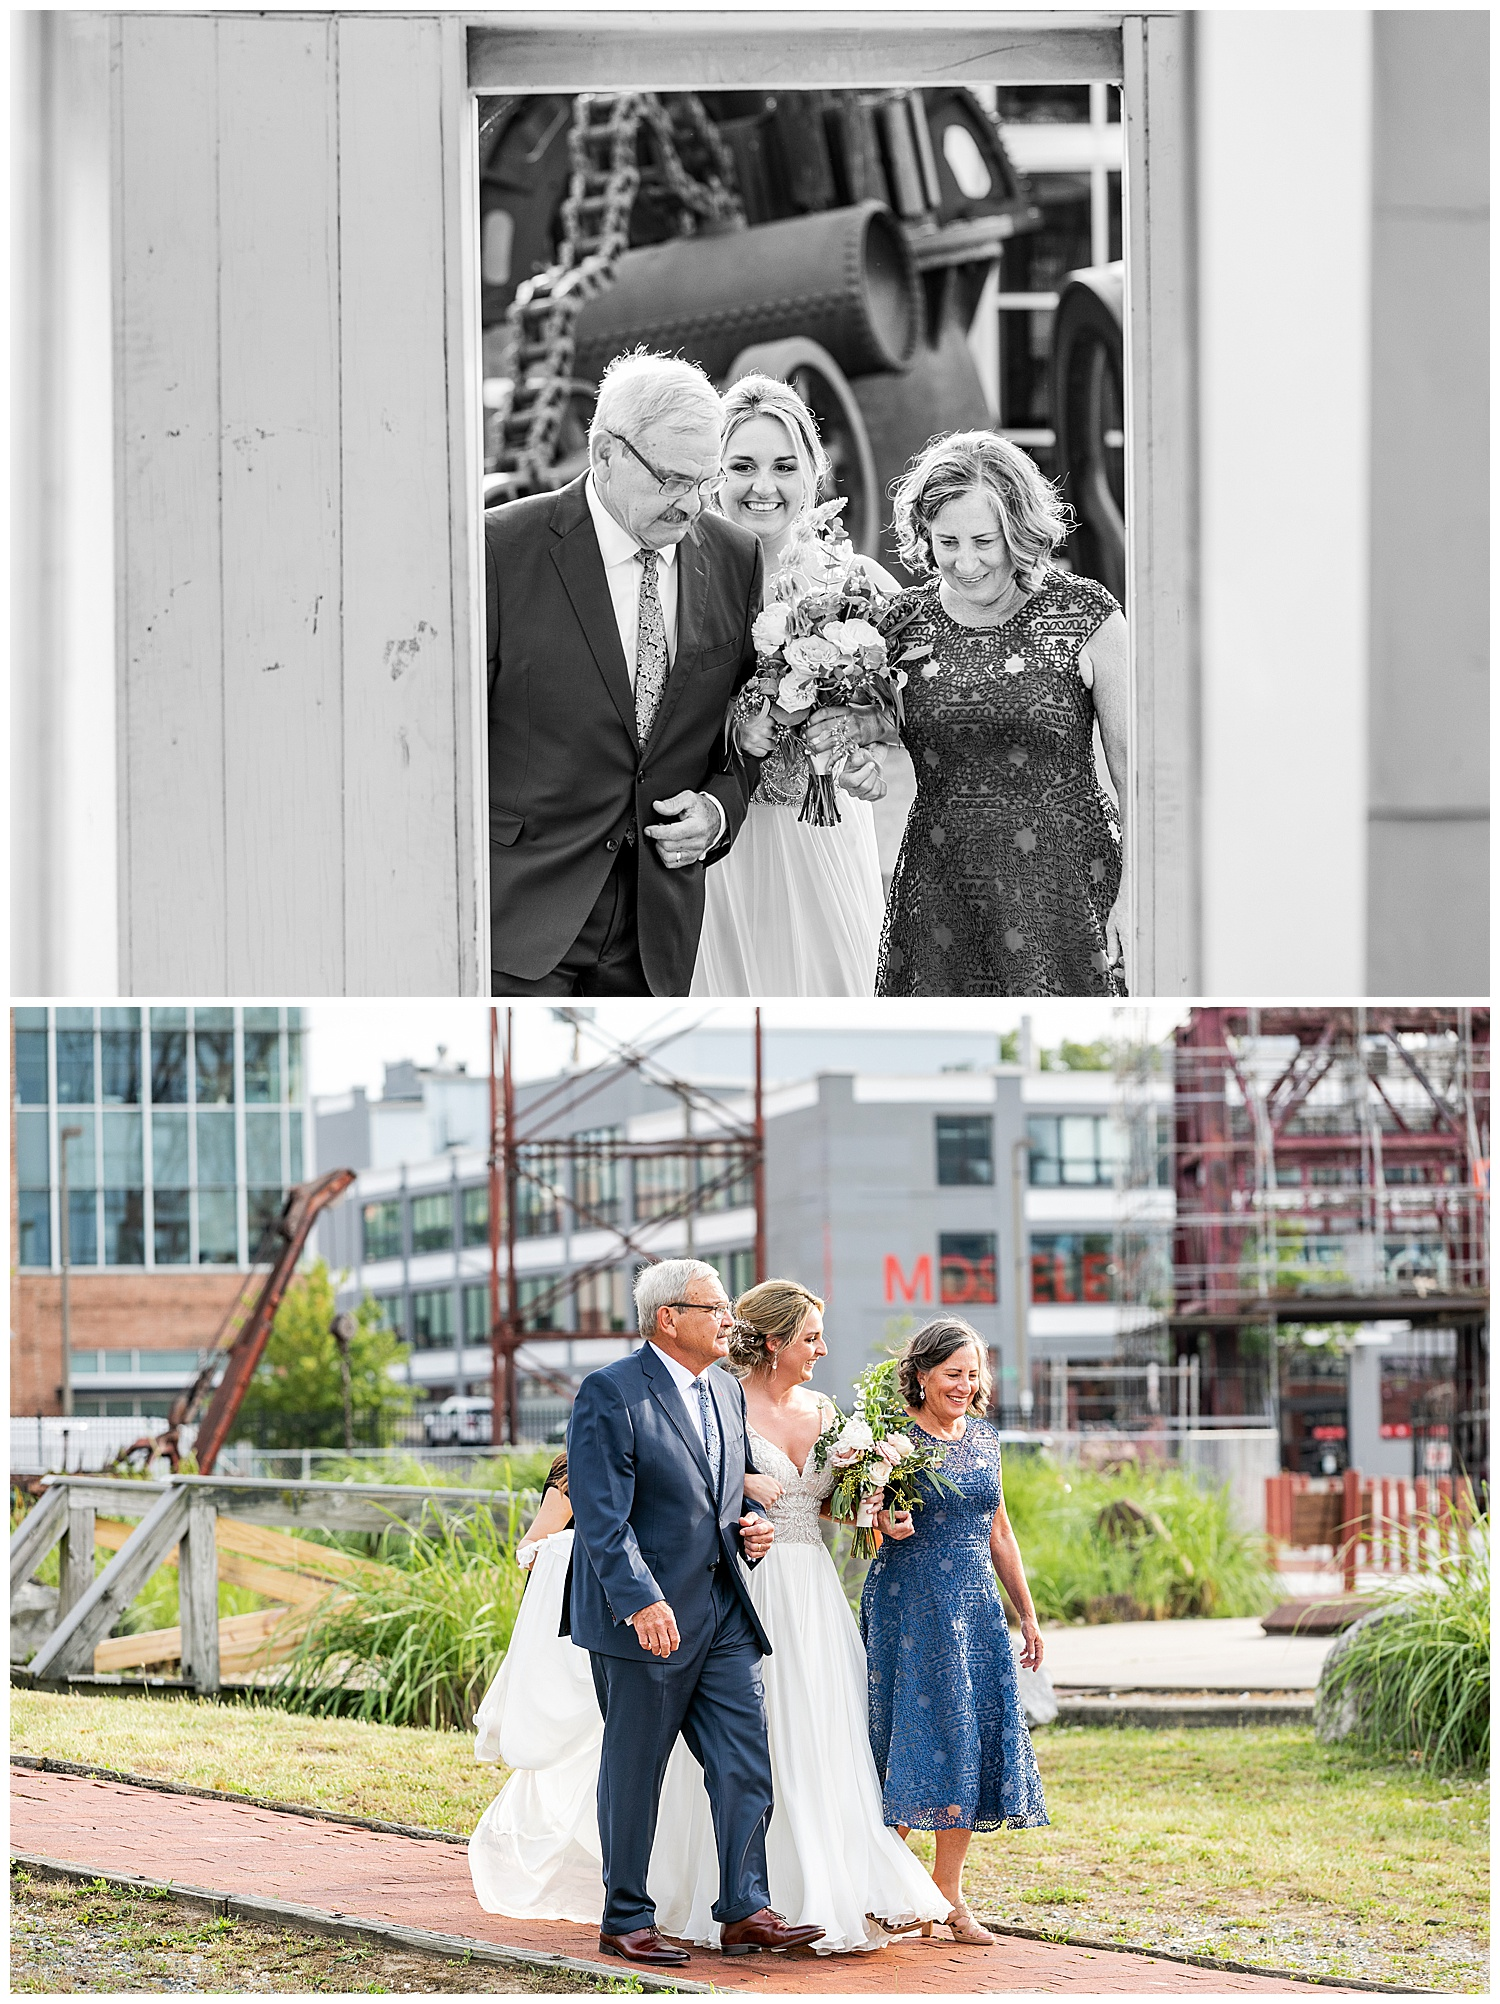 Jenn Brent Baltimore Museum of Industry Wedding Living Radiant Photography photos_0053.jpg